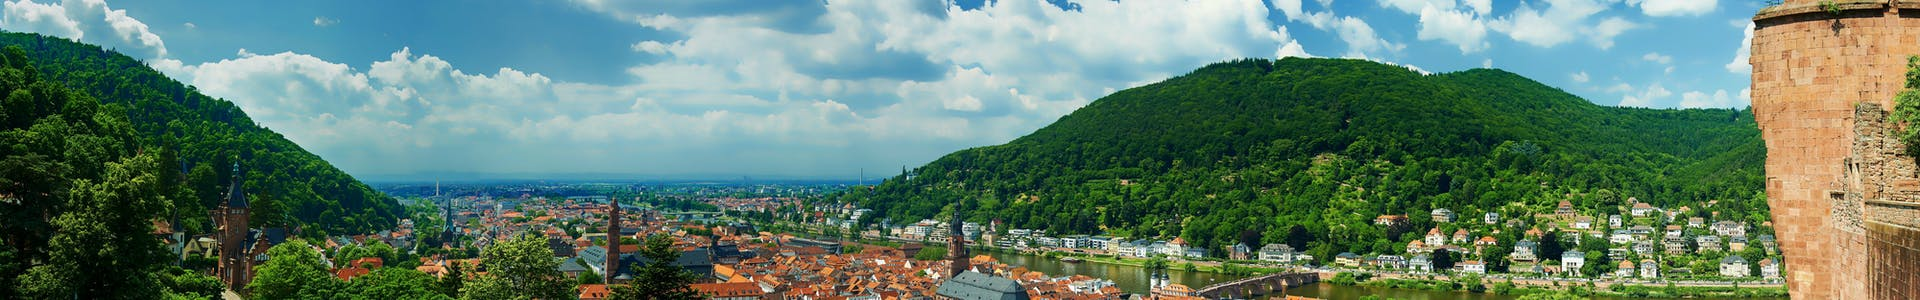 Studying in Heidelberg, Germany